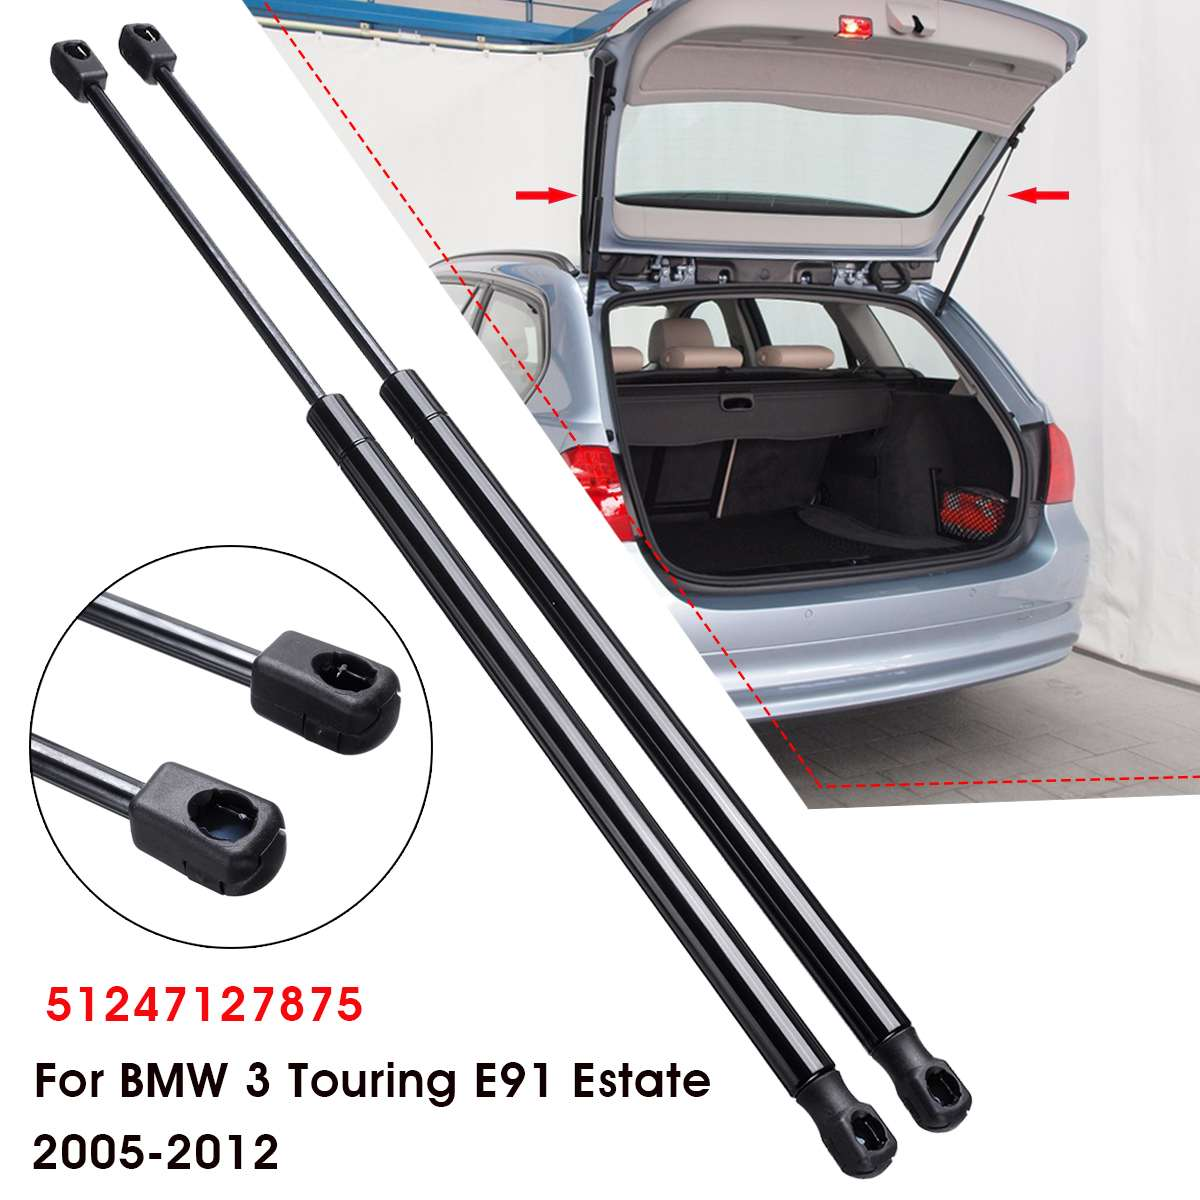 2pcs Car Rear Boot Tailgate Gas Spring Struts For BMW 3 Touring E91 Estate 2005-2012 512471278752pcs Car Rear Boot Tailgate Gas Spring Struts For BMW 3 Touring E91 Estate 2005-2012 51247127875